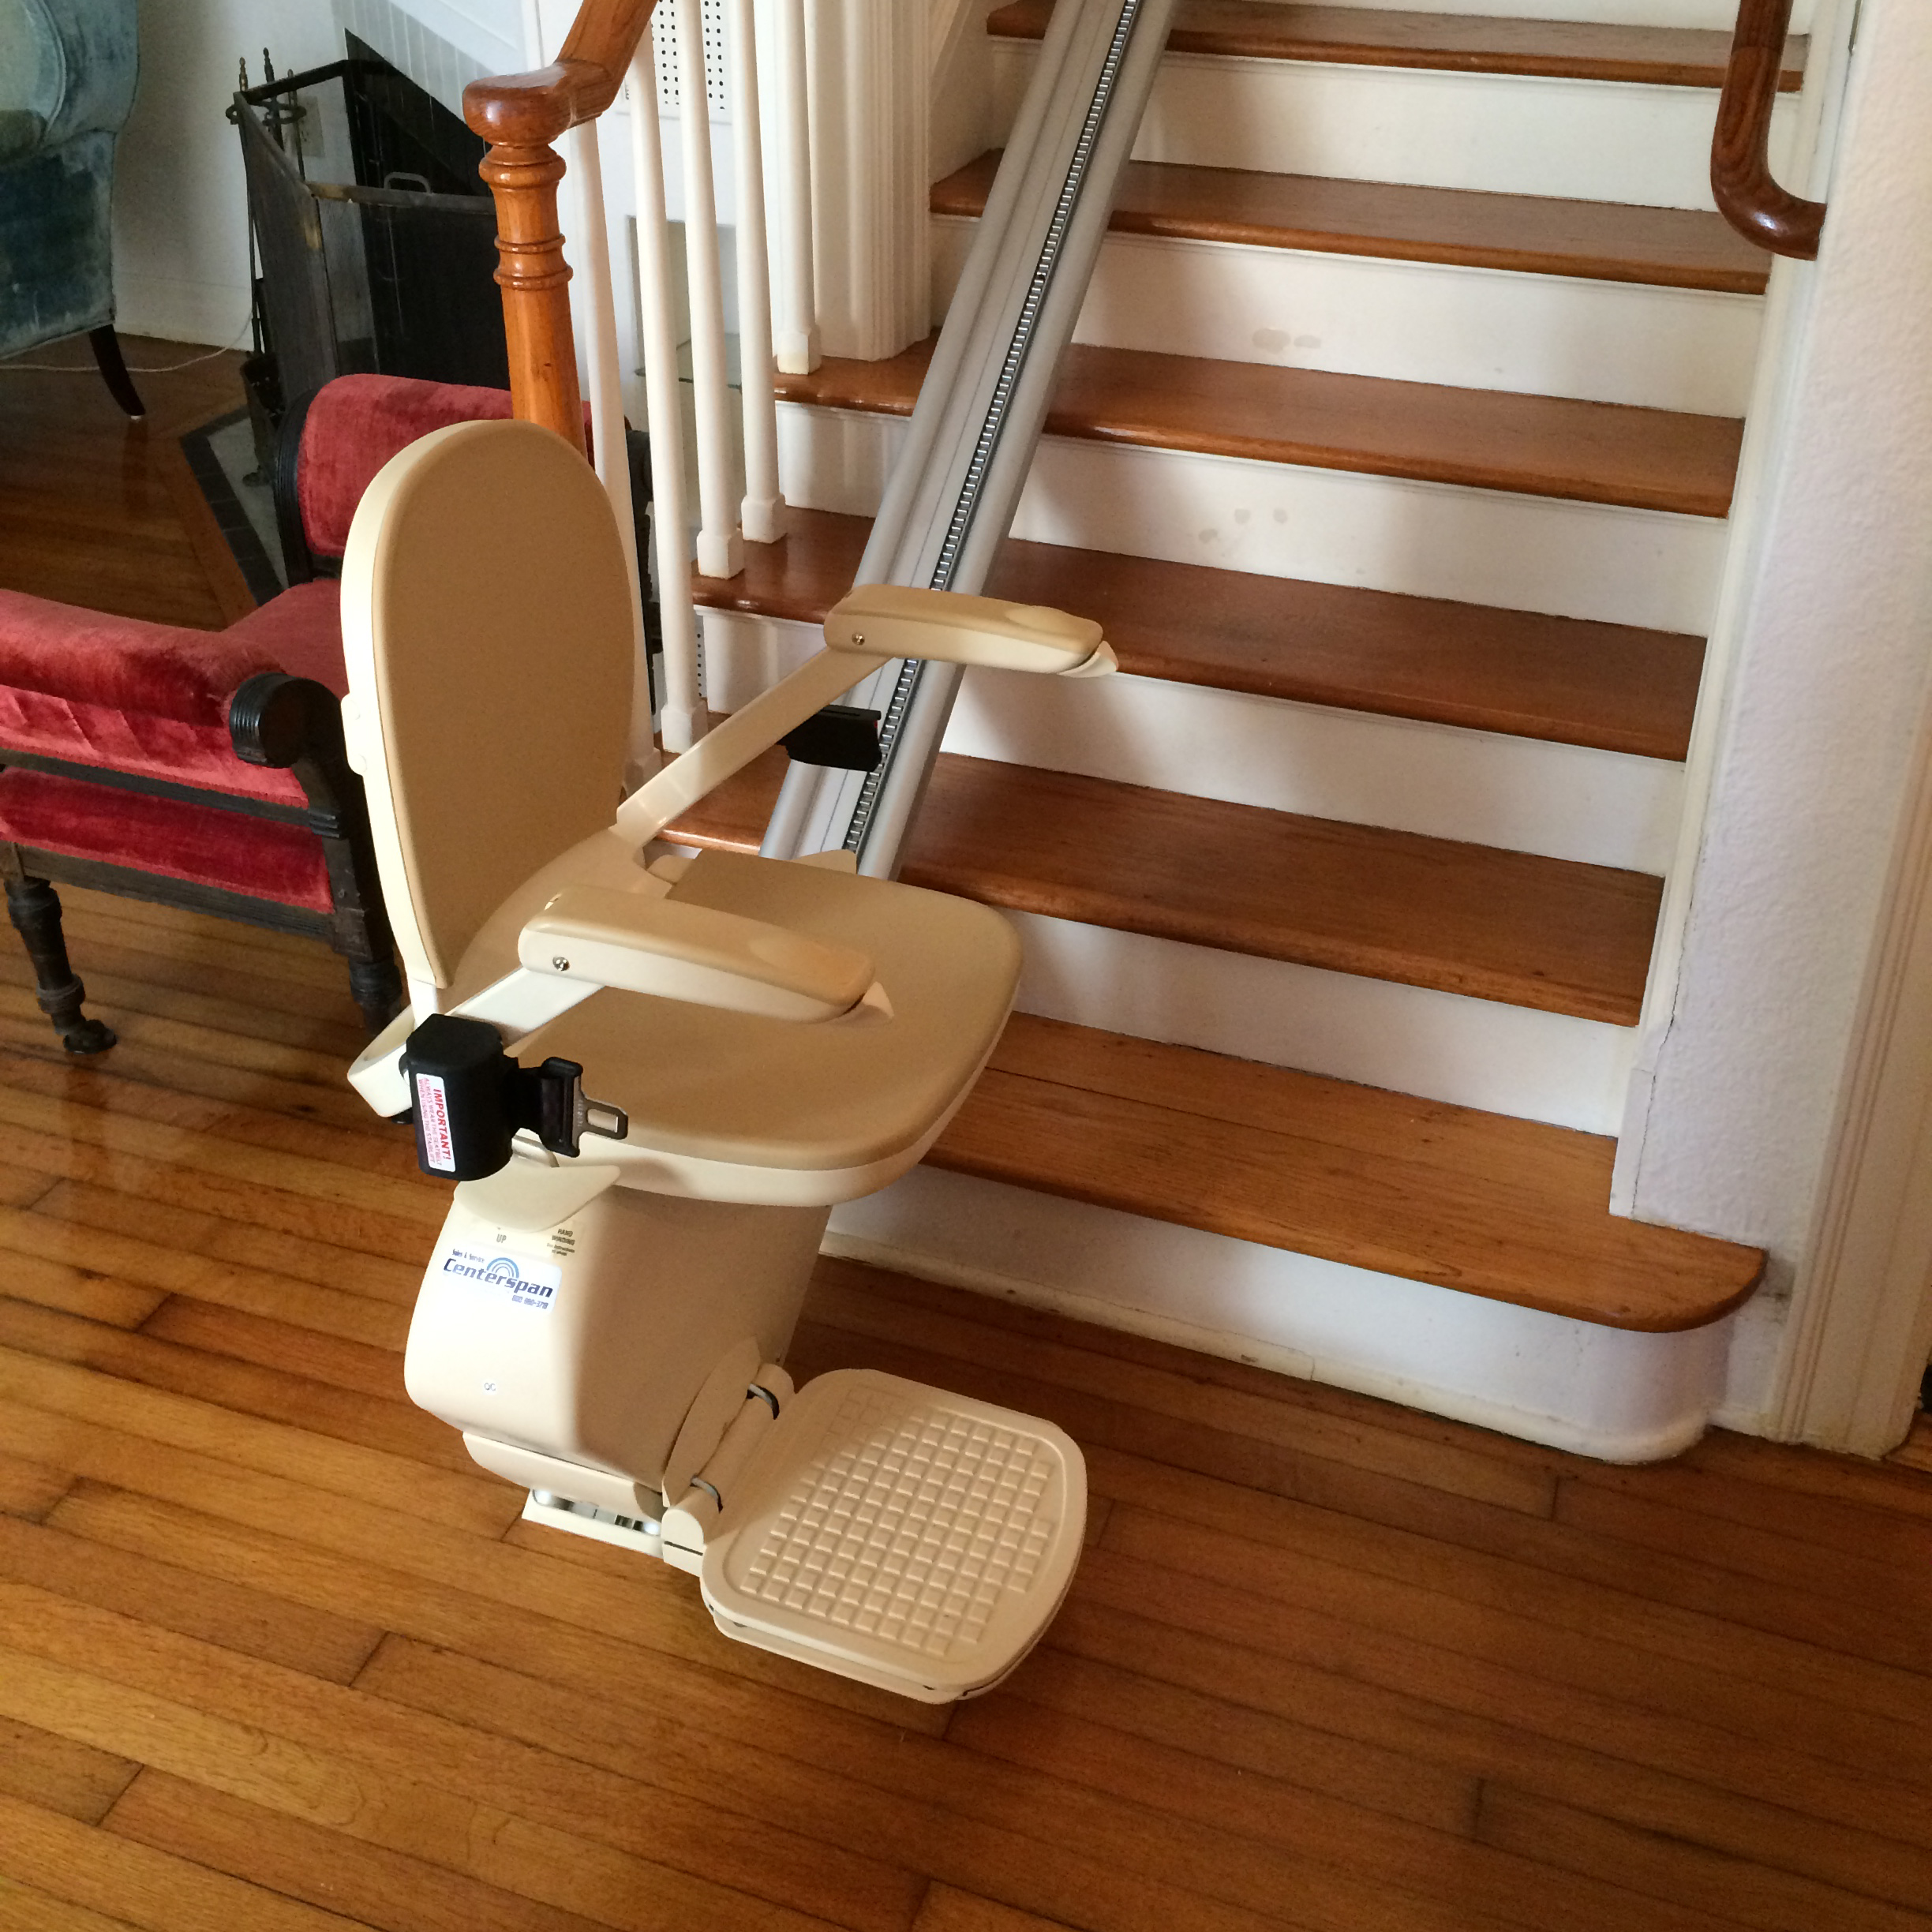 chair lifts for stairs with landings cheap lounge chairs living room what to consider when buying a stair lift stuffablog